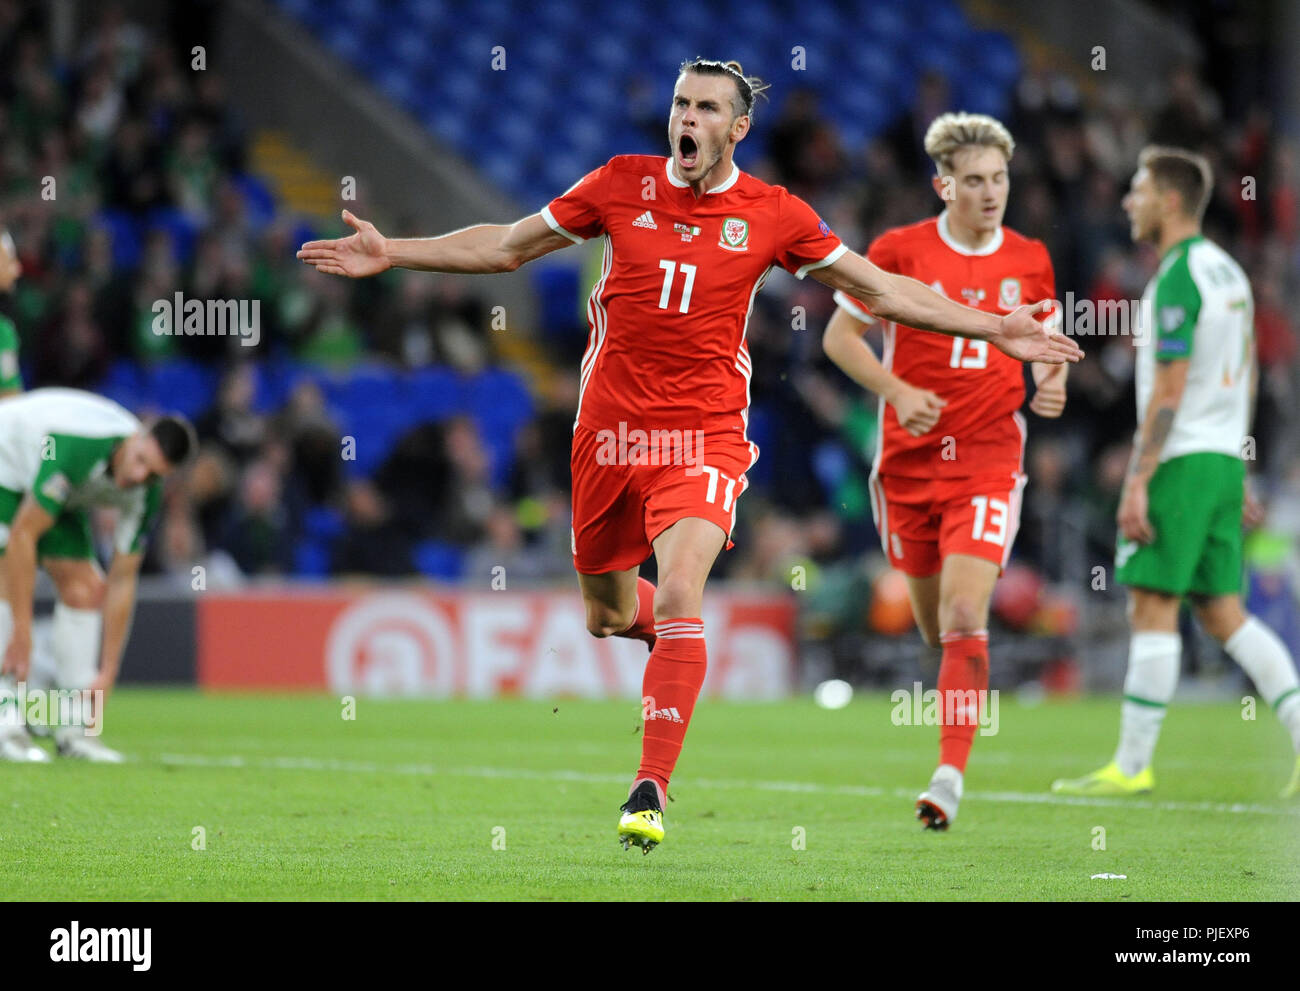 Cardiff, UK. 6th September 2018, UEFA Nations League 2019 Wales v Republic of Ireland Gareth Bale of Wales celebrates his sides second goal at the Cardiff City Stadium tonight against the Republic of Ireland. Credit: Phil Rees/Alamy Live News - Stock Image